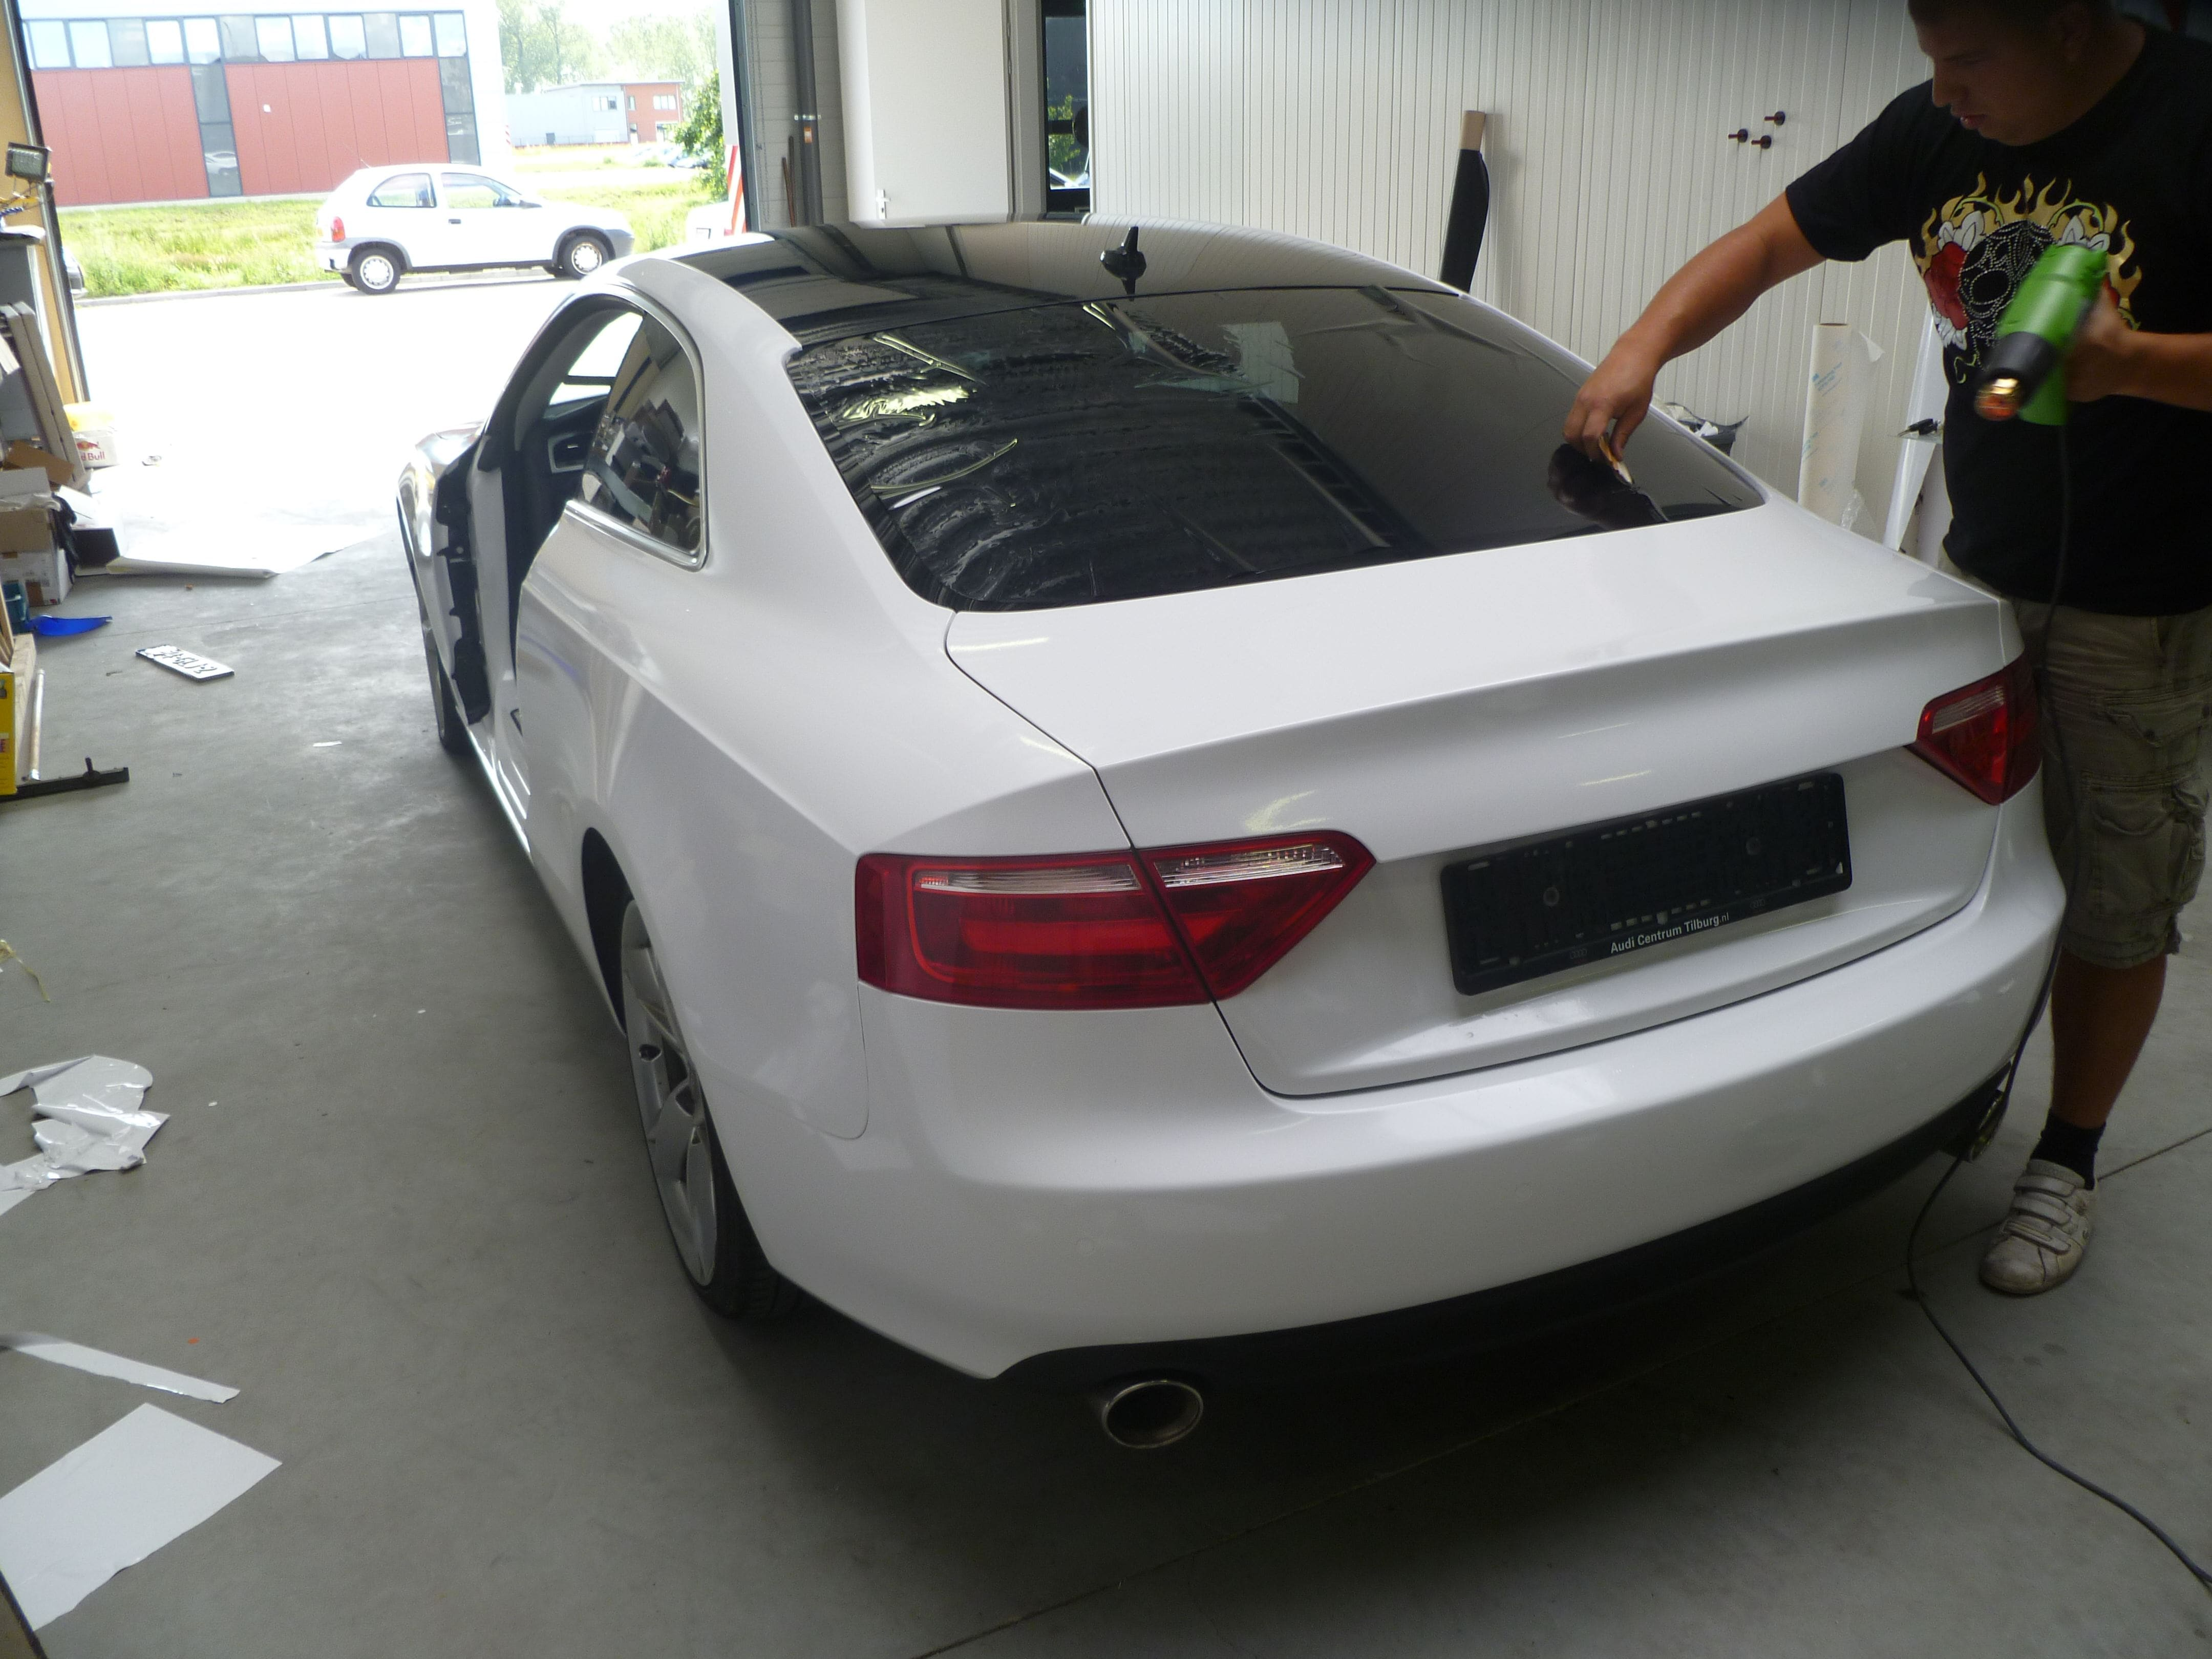 Audi A5 coupe met Metallic Witte Wrap, Carwrapping door Wrapmyride.nu Foto-nr:4735, ©2020